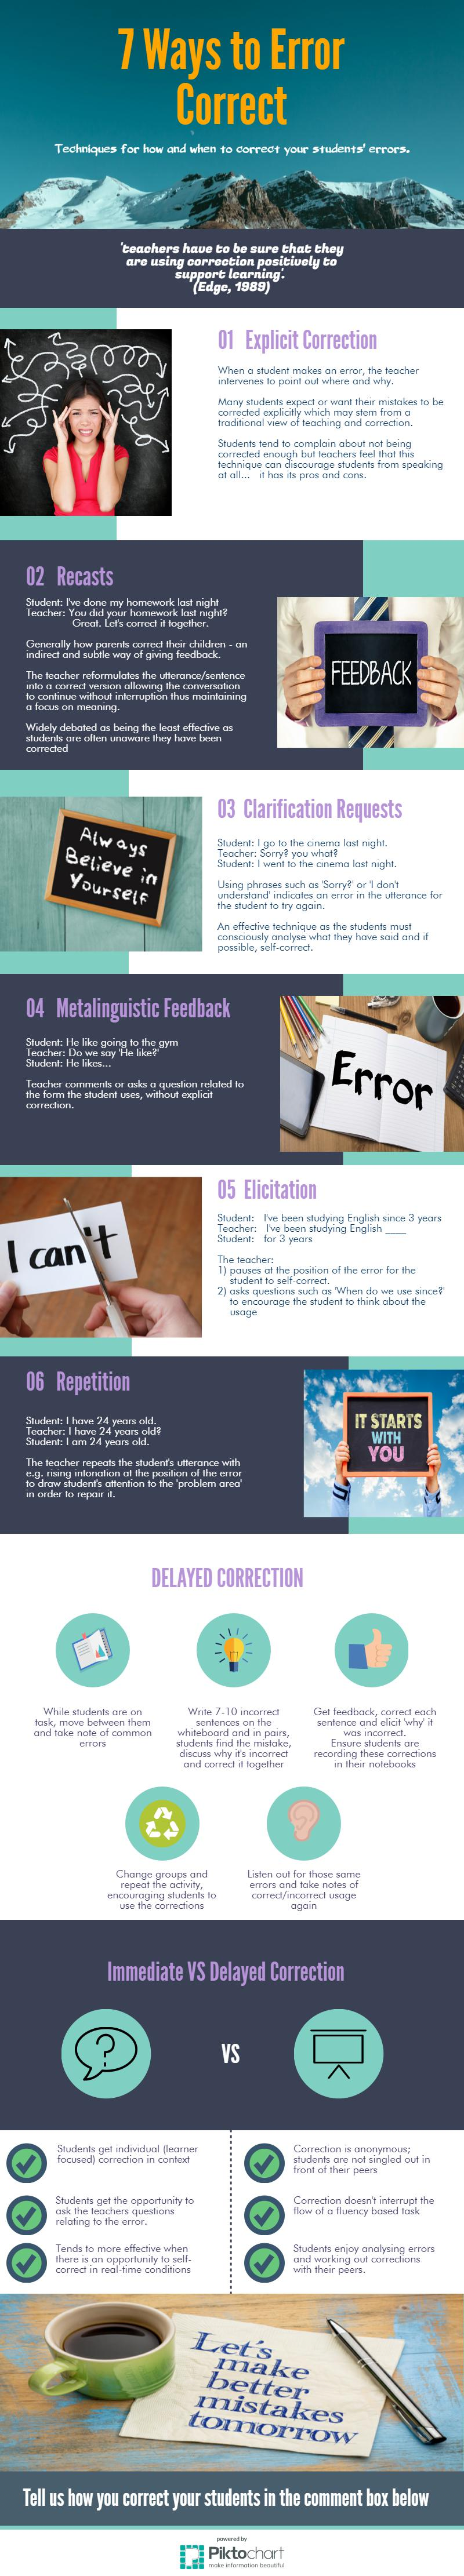 7-ways-to-error-correct